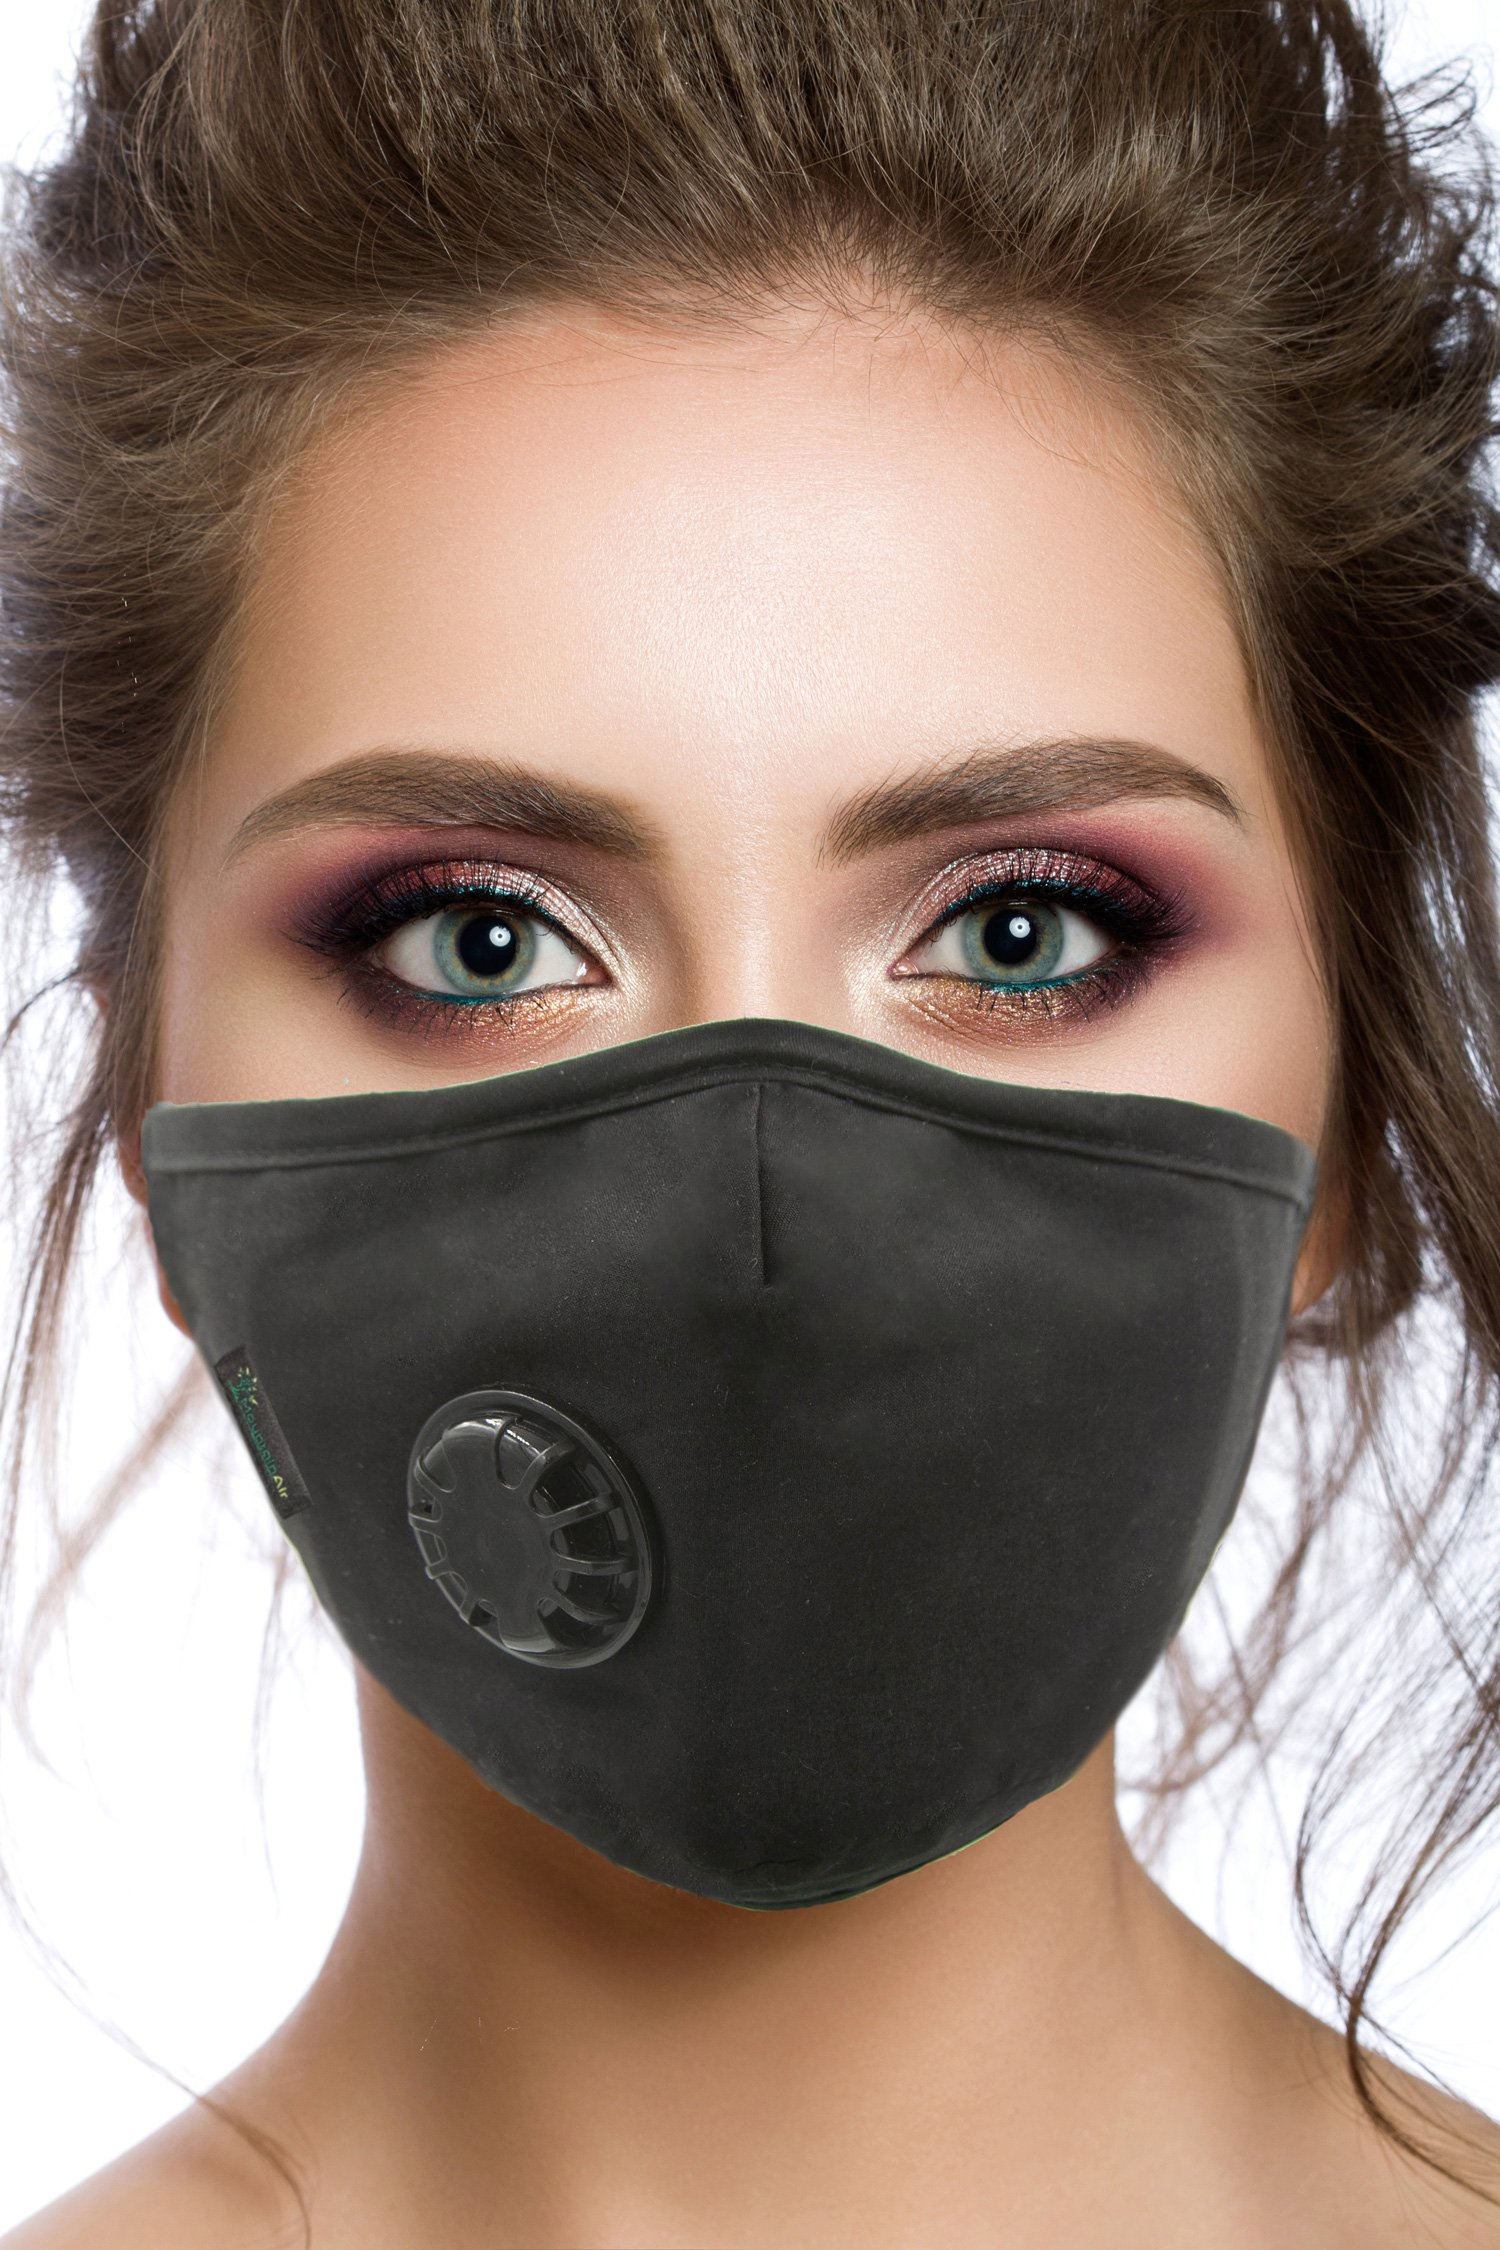 Air Pollution Face Mask with Filter and Respirator - Anti-Dust, Smoke, Gas and Allergies - Military Grade - Washable and Reusable - Supports Breathing Clean Air - N99 Protection